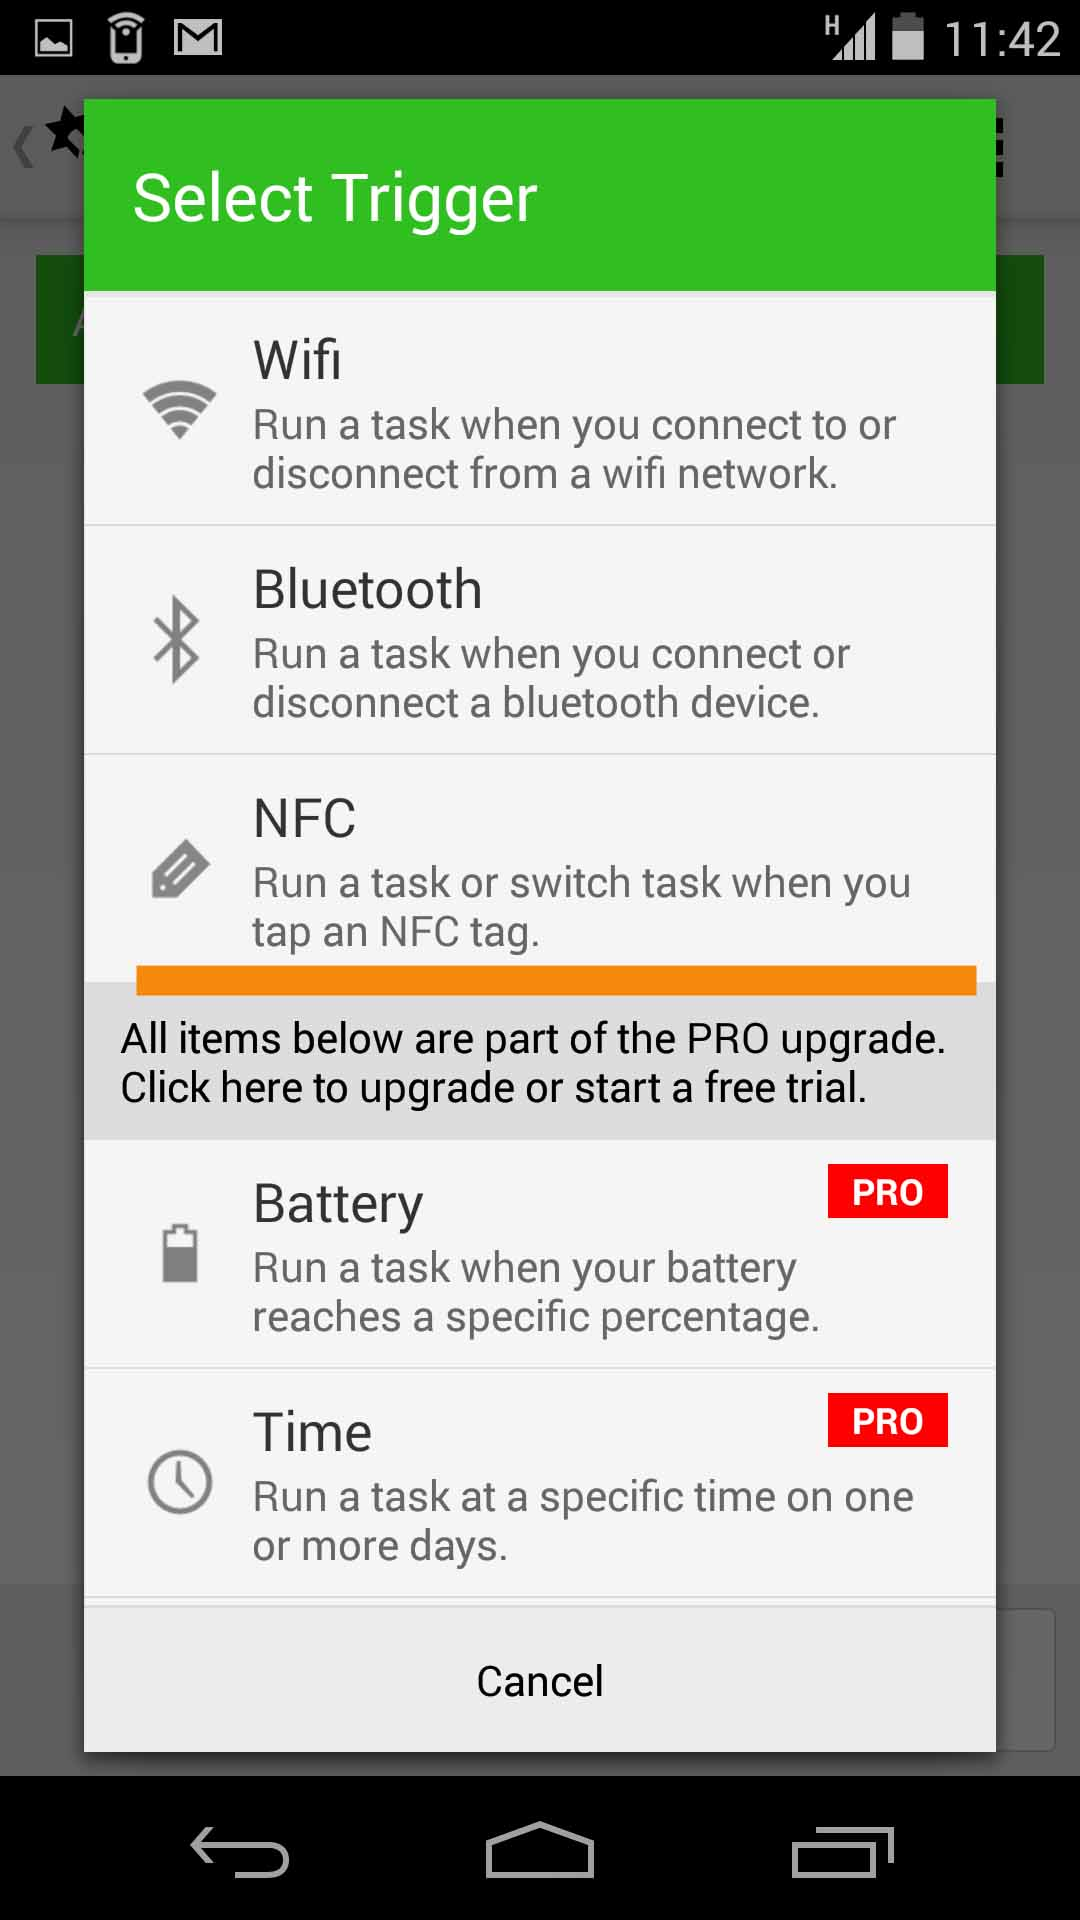 - Step 4: Select NFC to specify that you want to use your NFC tag to trigger your task